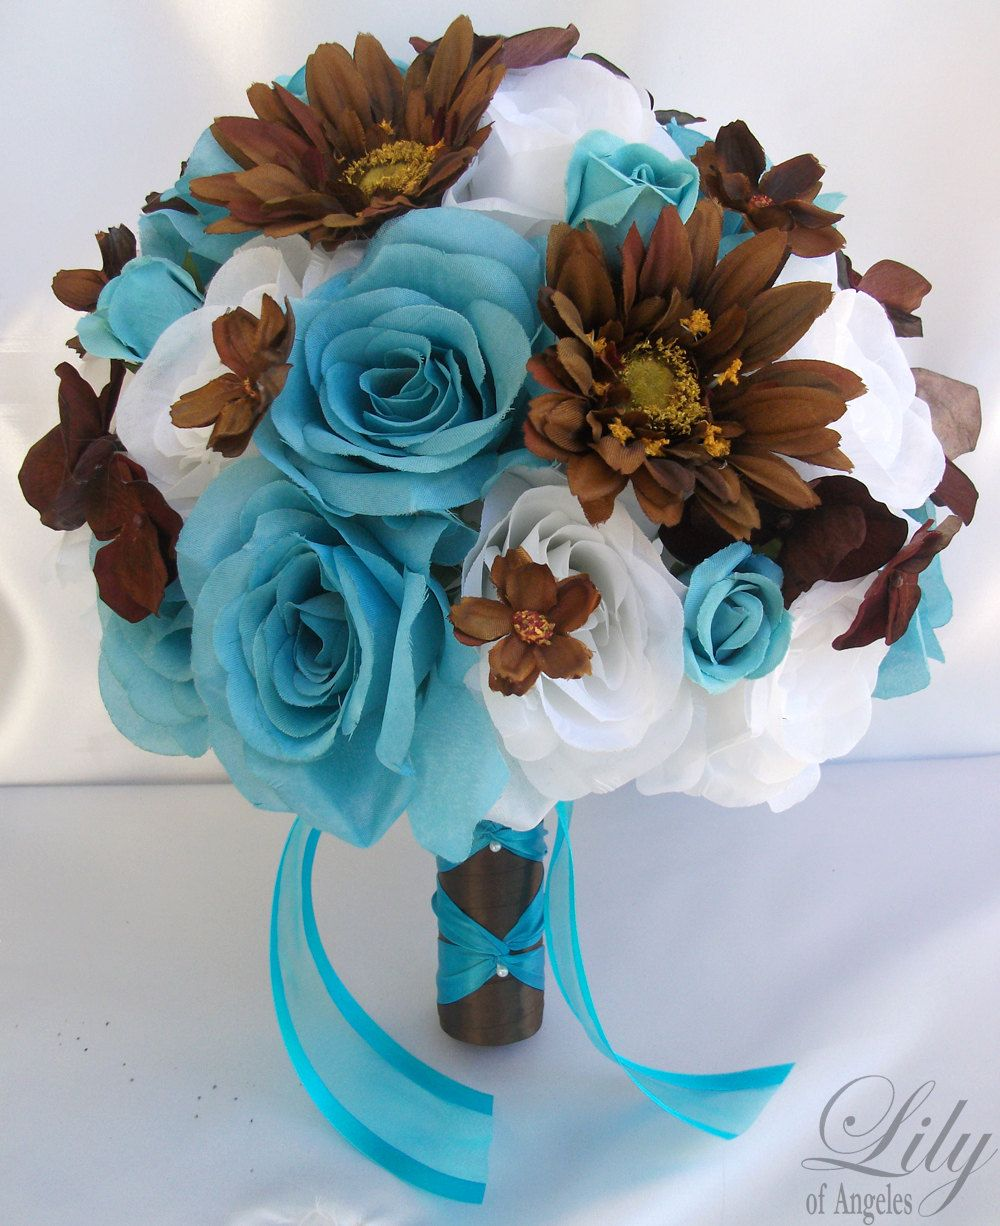 17 pieces package silk flower wedding decoration bridal bouquet 17 pieces package silk flower wedding decoration bridal bouquet turquoise white brown lily of angeles dhlflorist Choice Image